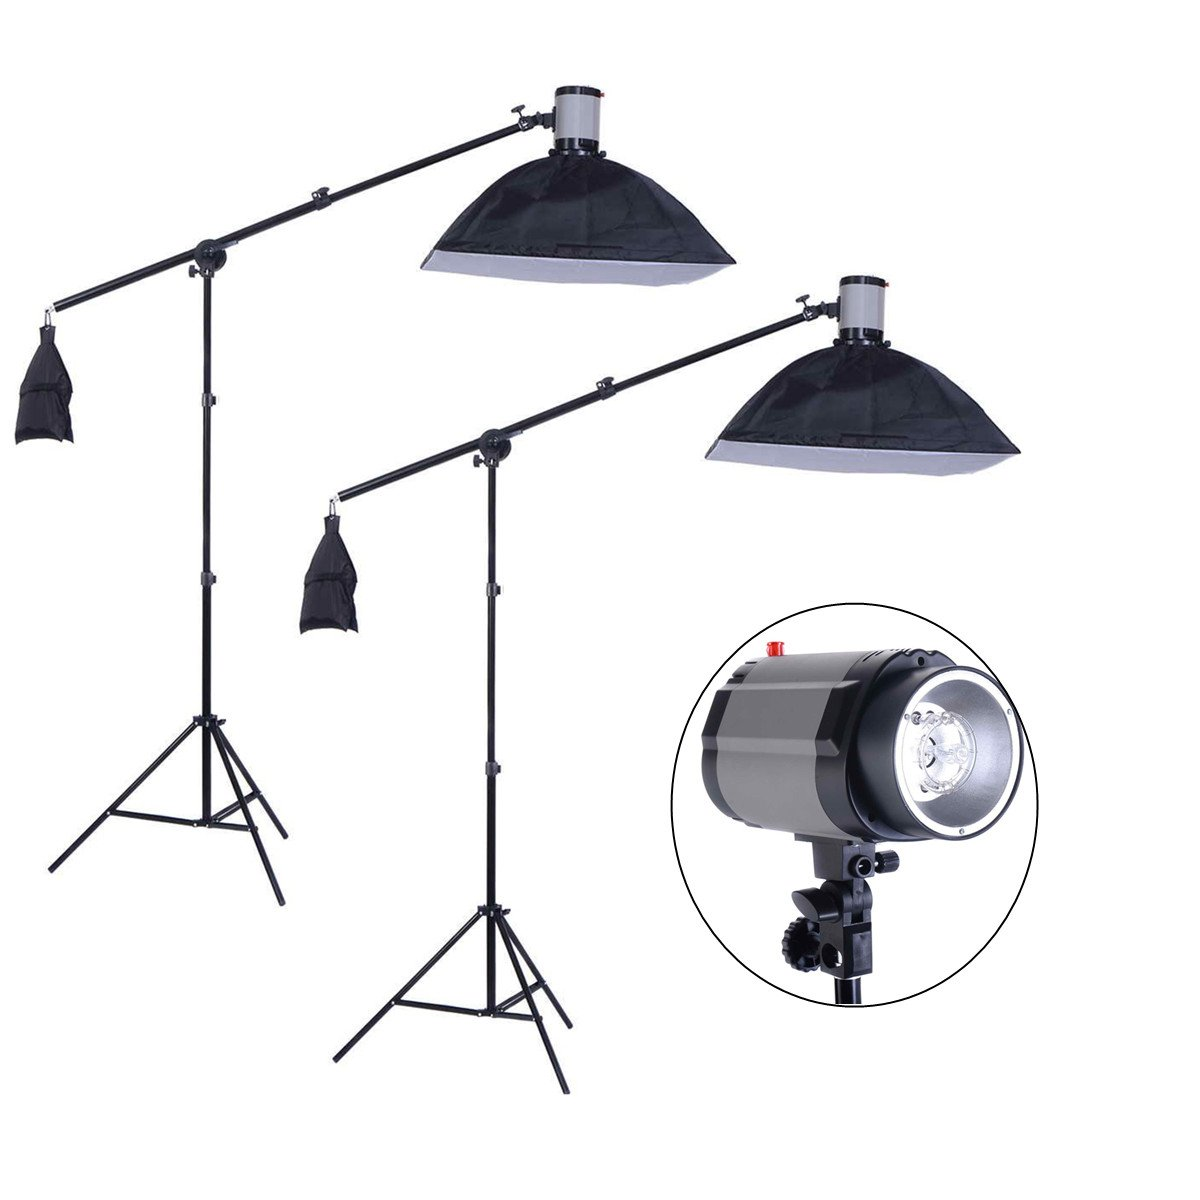 Safstar Professional Photo Studio Strobe Monolight Lighting Kit for Video Shooting, Location and Portrait Photography - 2 x Overhead Boom Light Kit, 2 x Softboxes, 1 x Carrying Bag by S AFSTAR (Image #1)